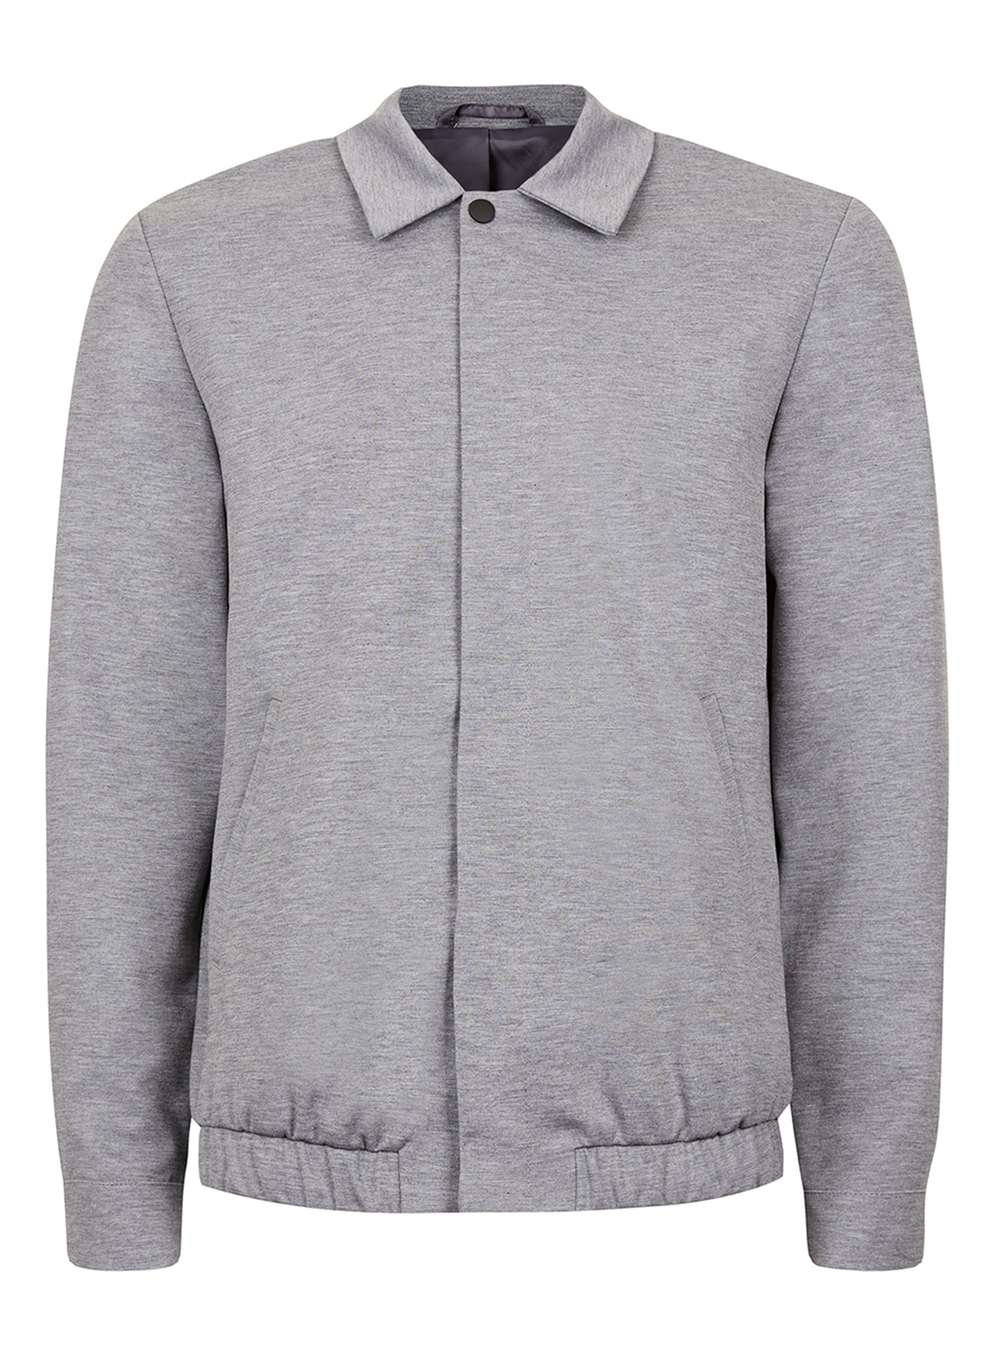 Light Grey Coach Jacket, £65 ( topman.com )